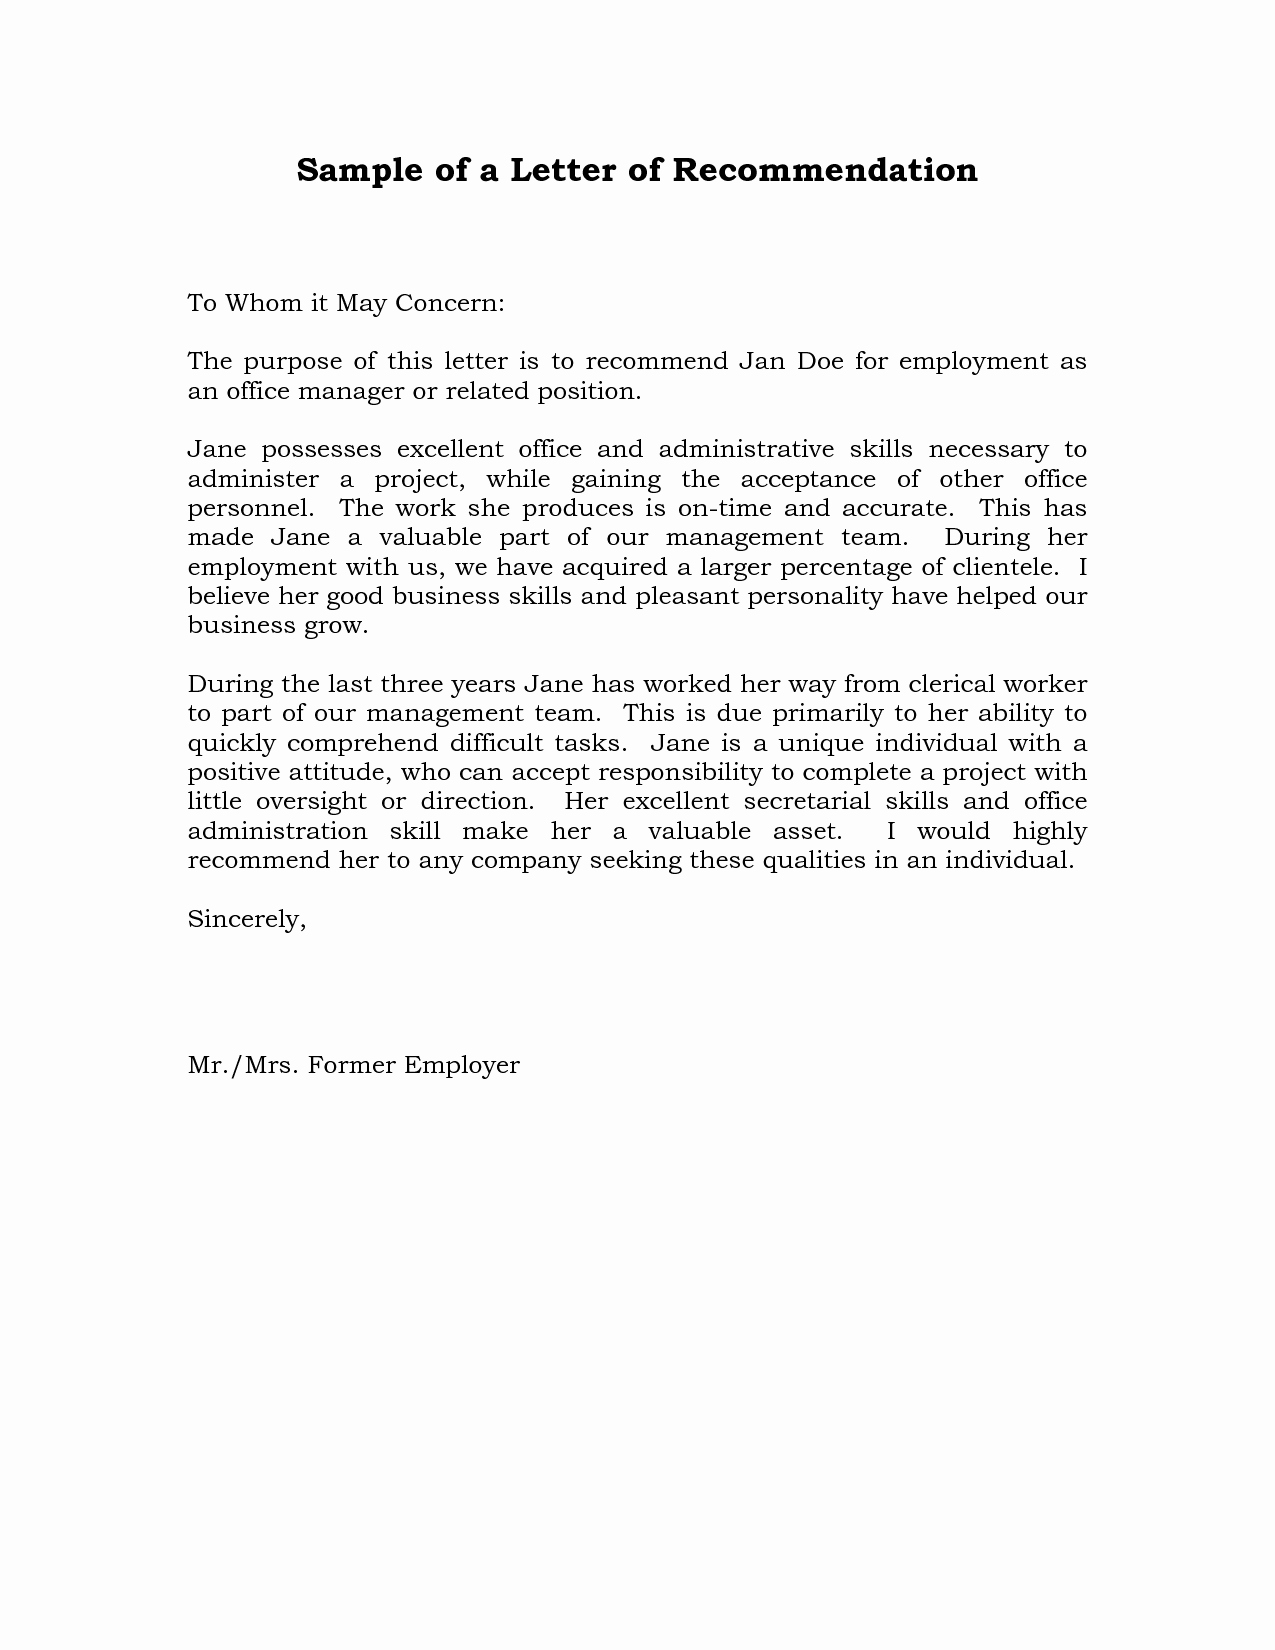 Letter Of Recommendation Sample Template Beautiful Letter Of Re Mendation Examples Sample & Templates